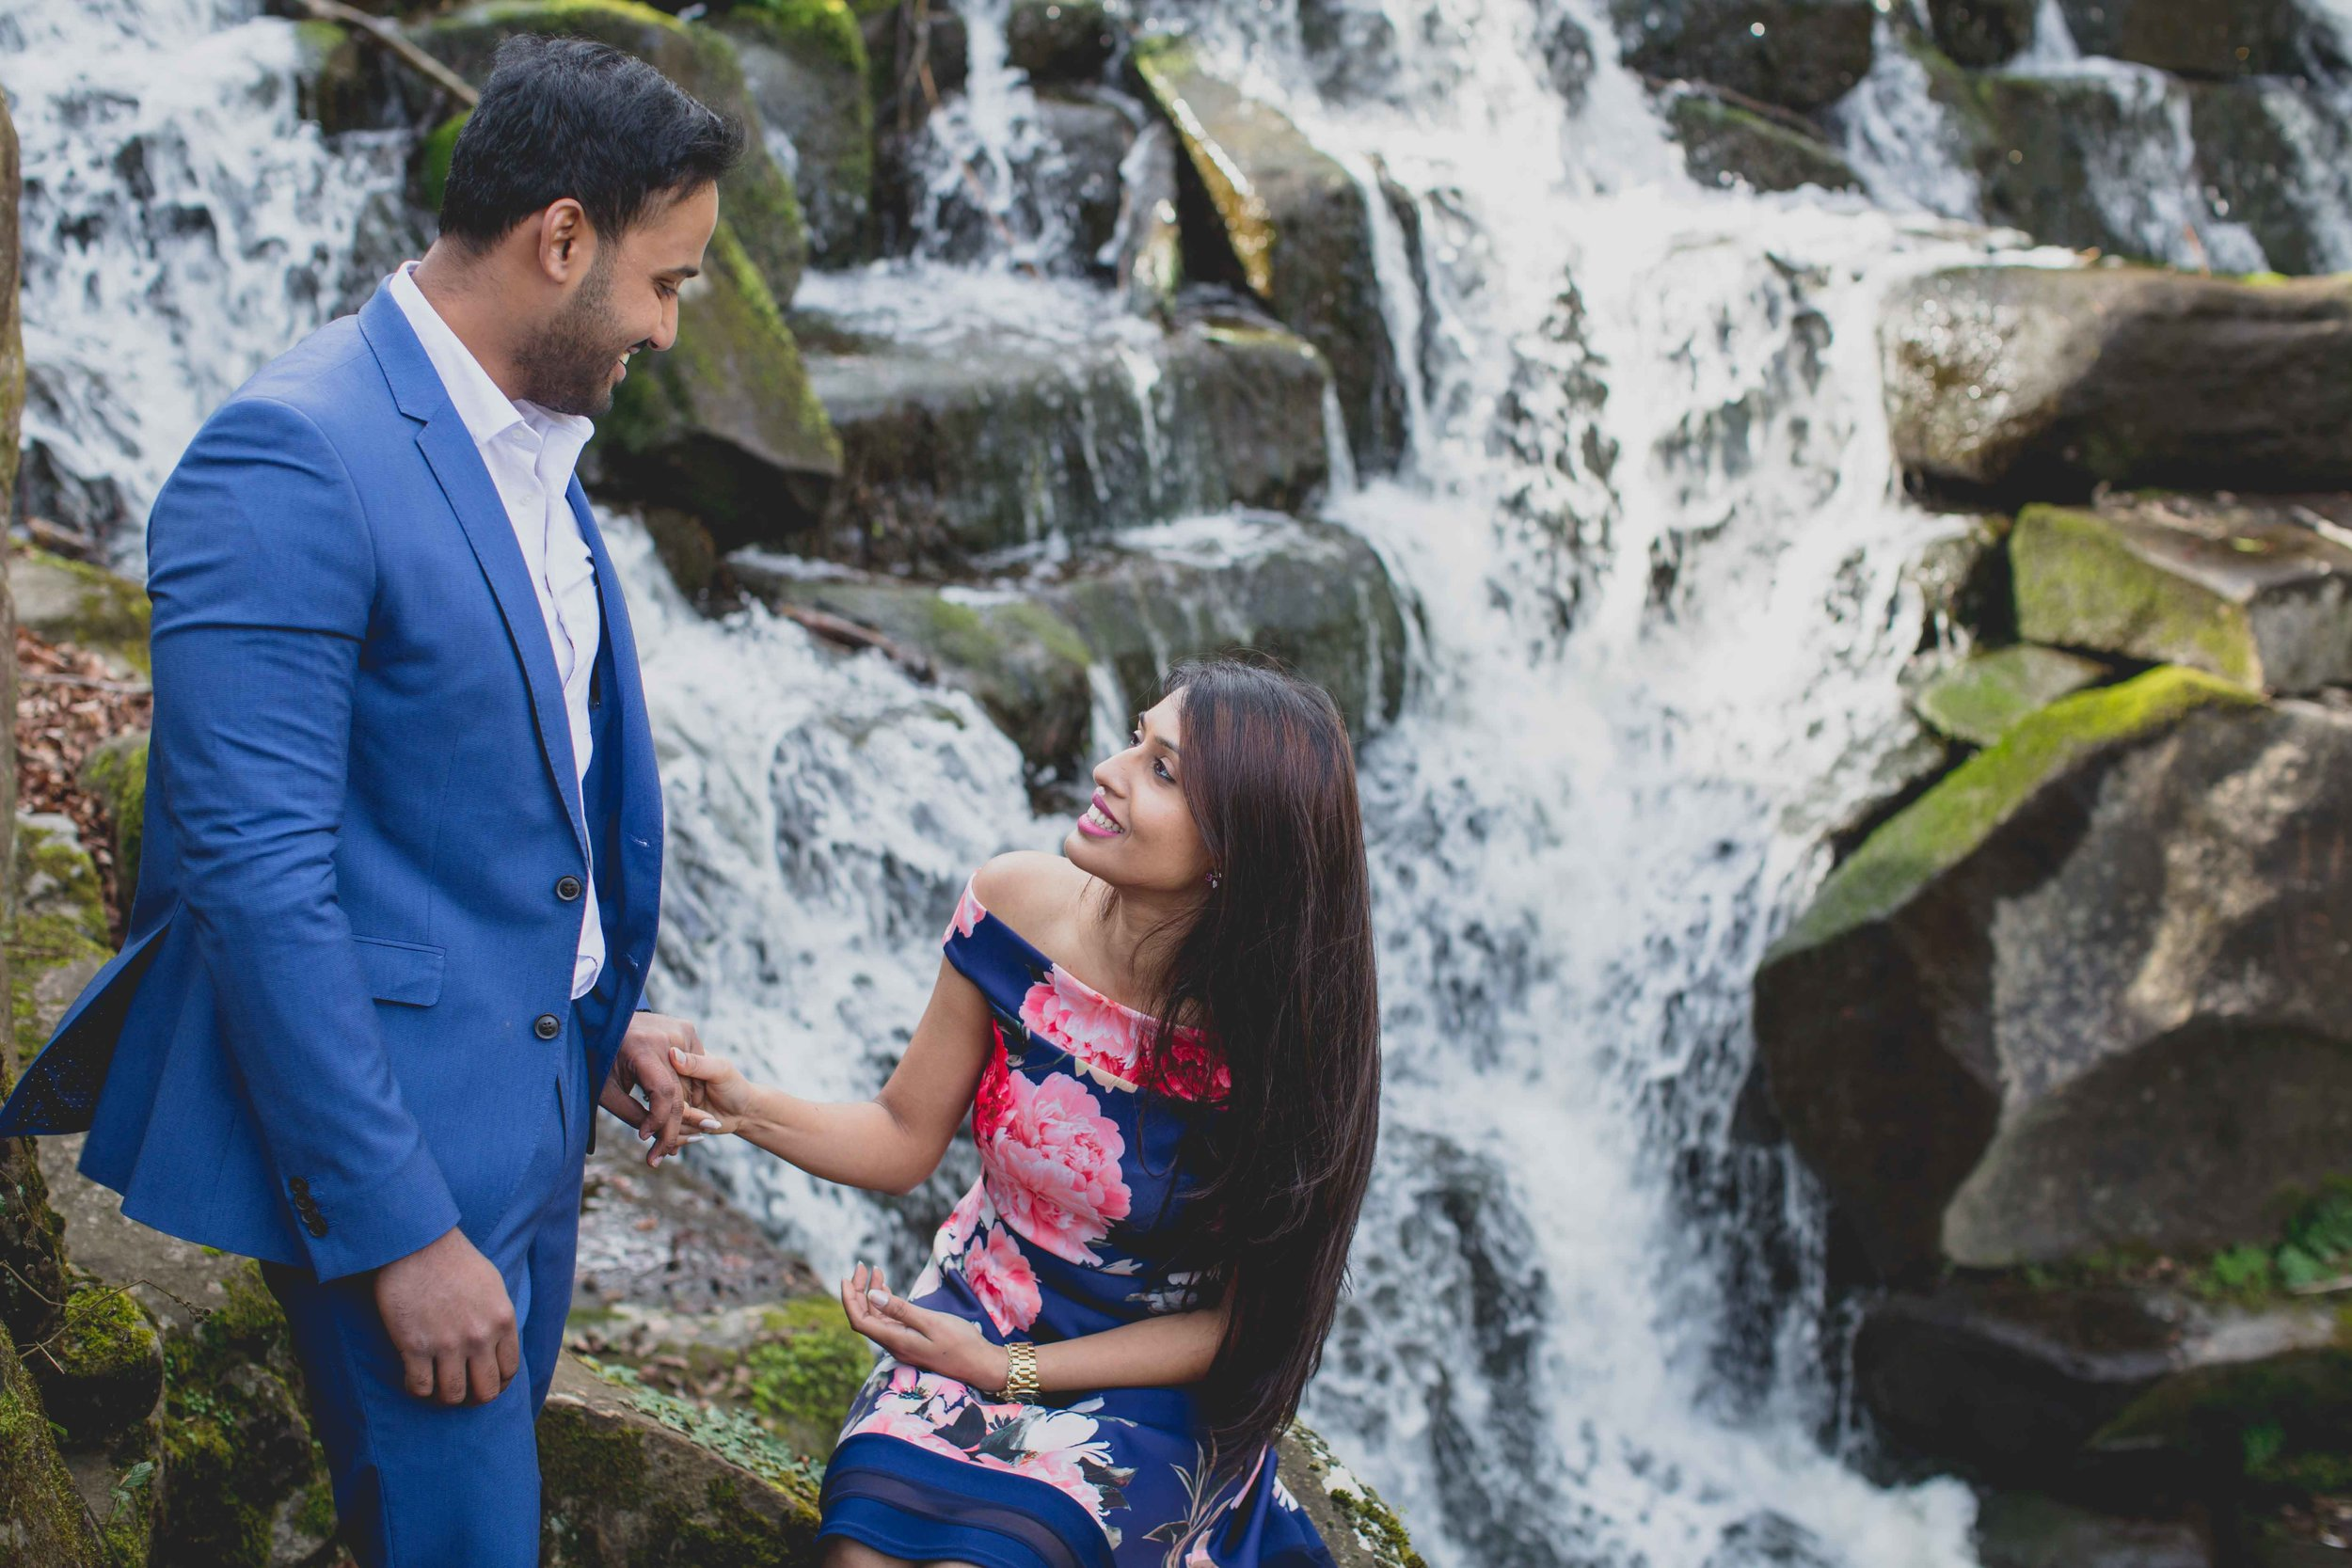 Virginia-waters-windsor-pre-wedding-engagement-shoot-female-asian-wedding-photographer-natalia-smith-photography-13.jpg